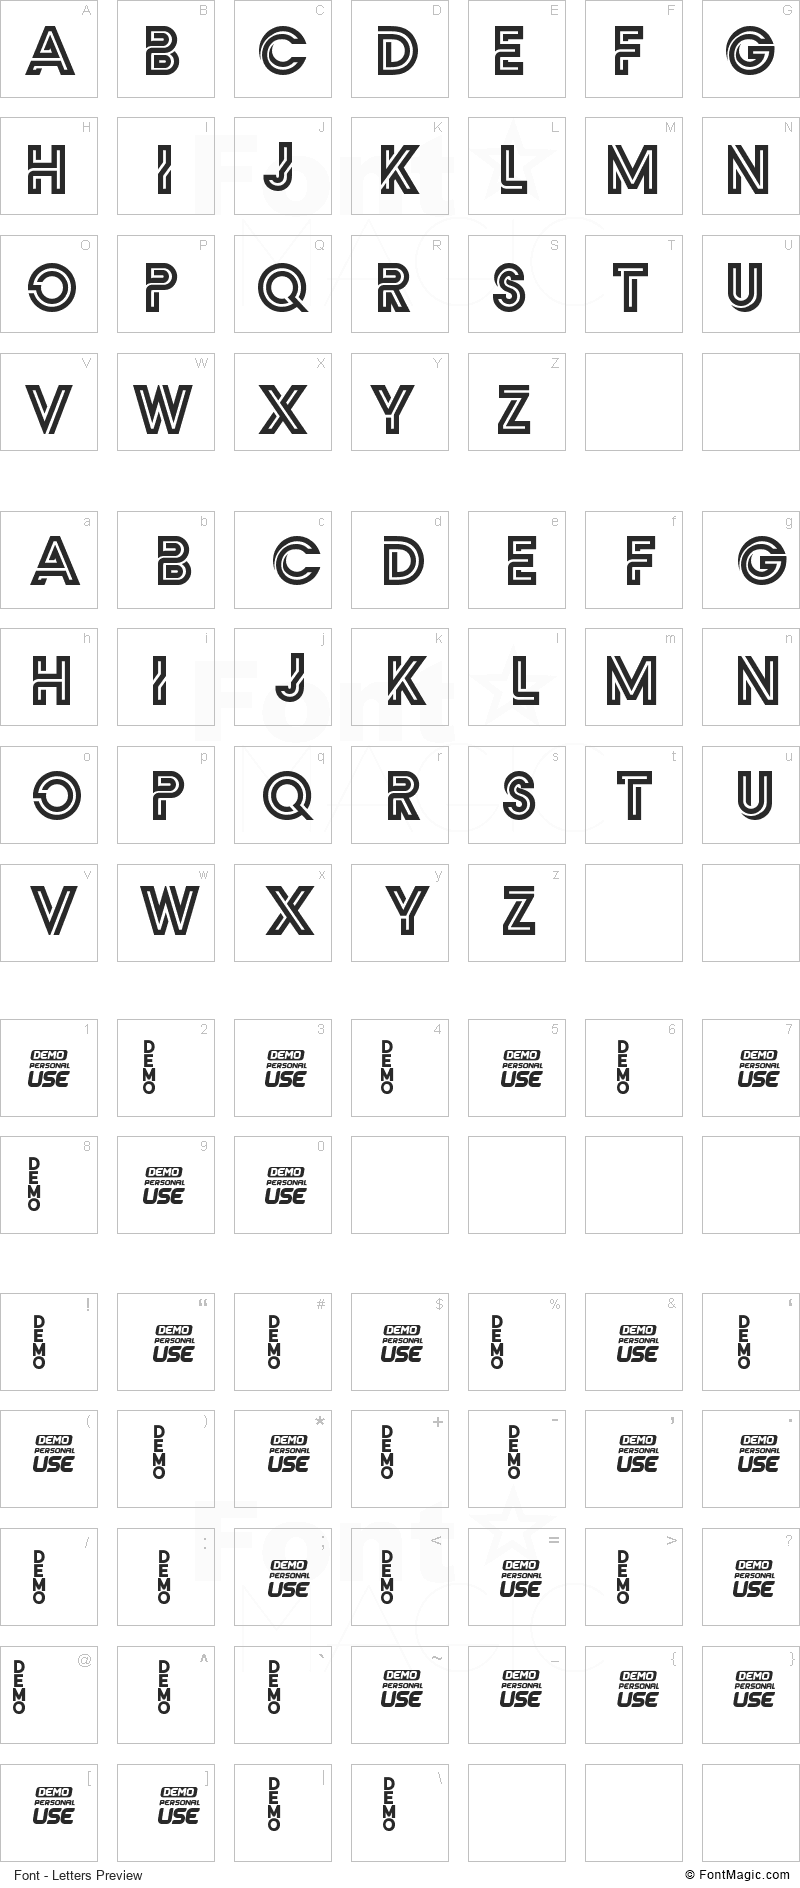 Zilap Monograma Font - All Latters Preview Chart